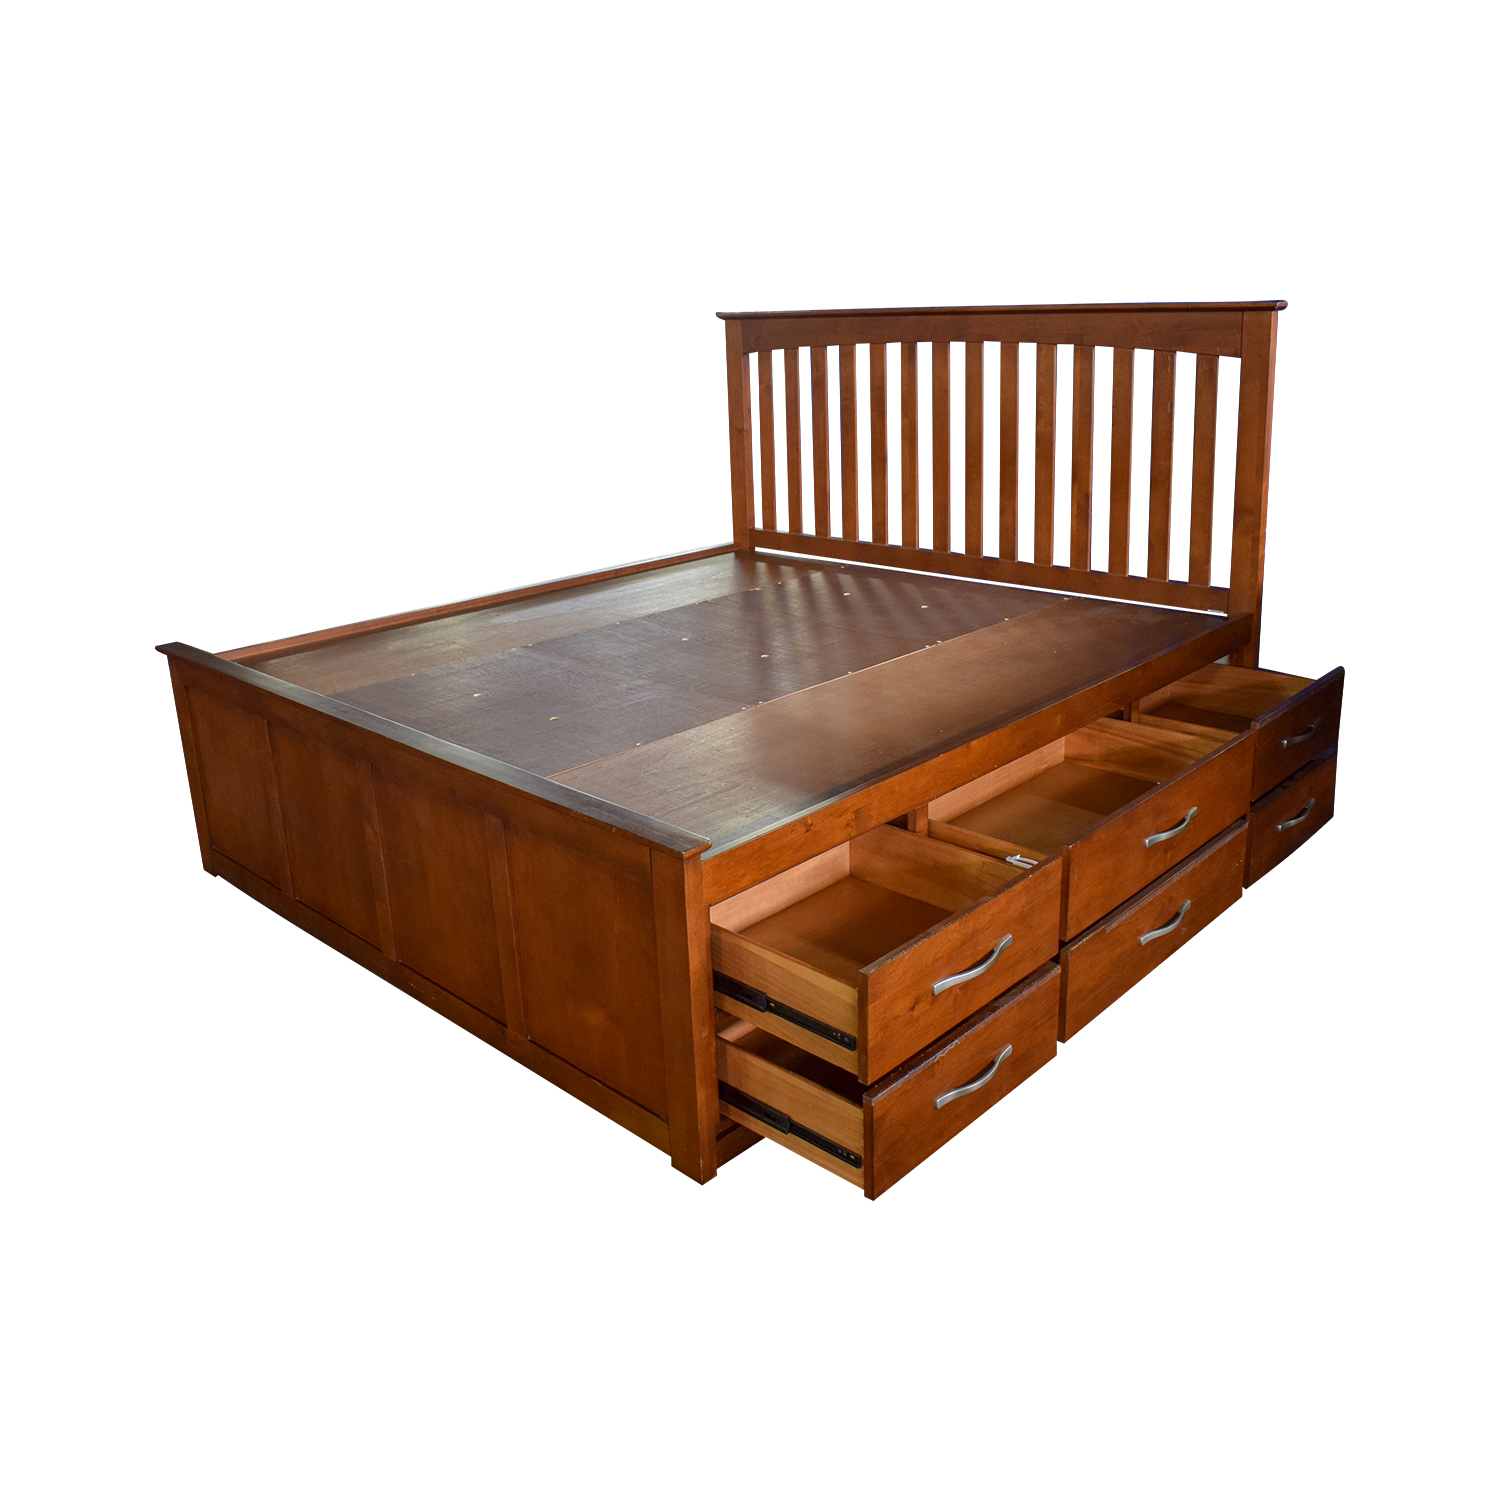 Raymour & Flanigan Raymour & Flanigan King Platform Bed Frame with Storage Drawers nyc